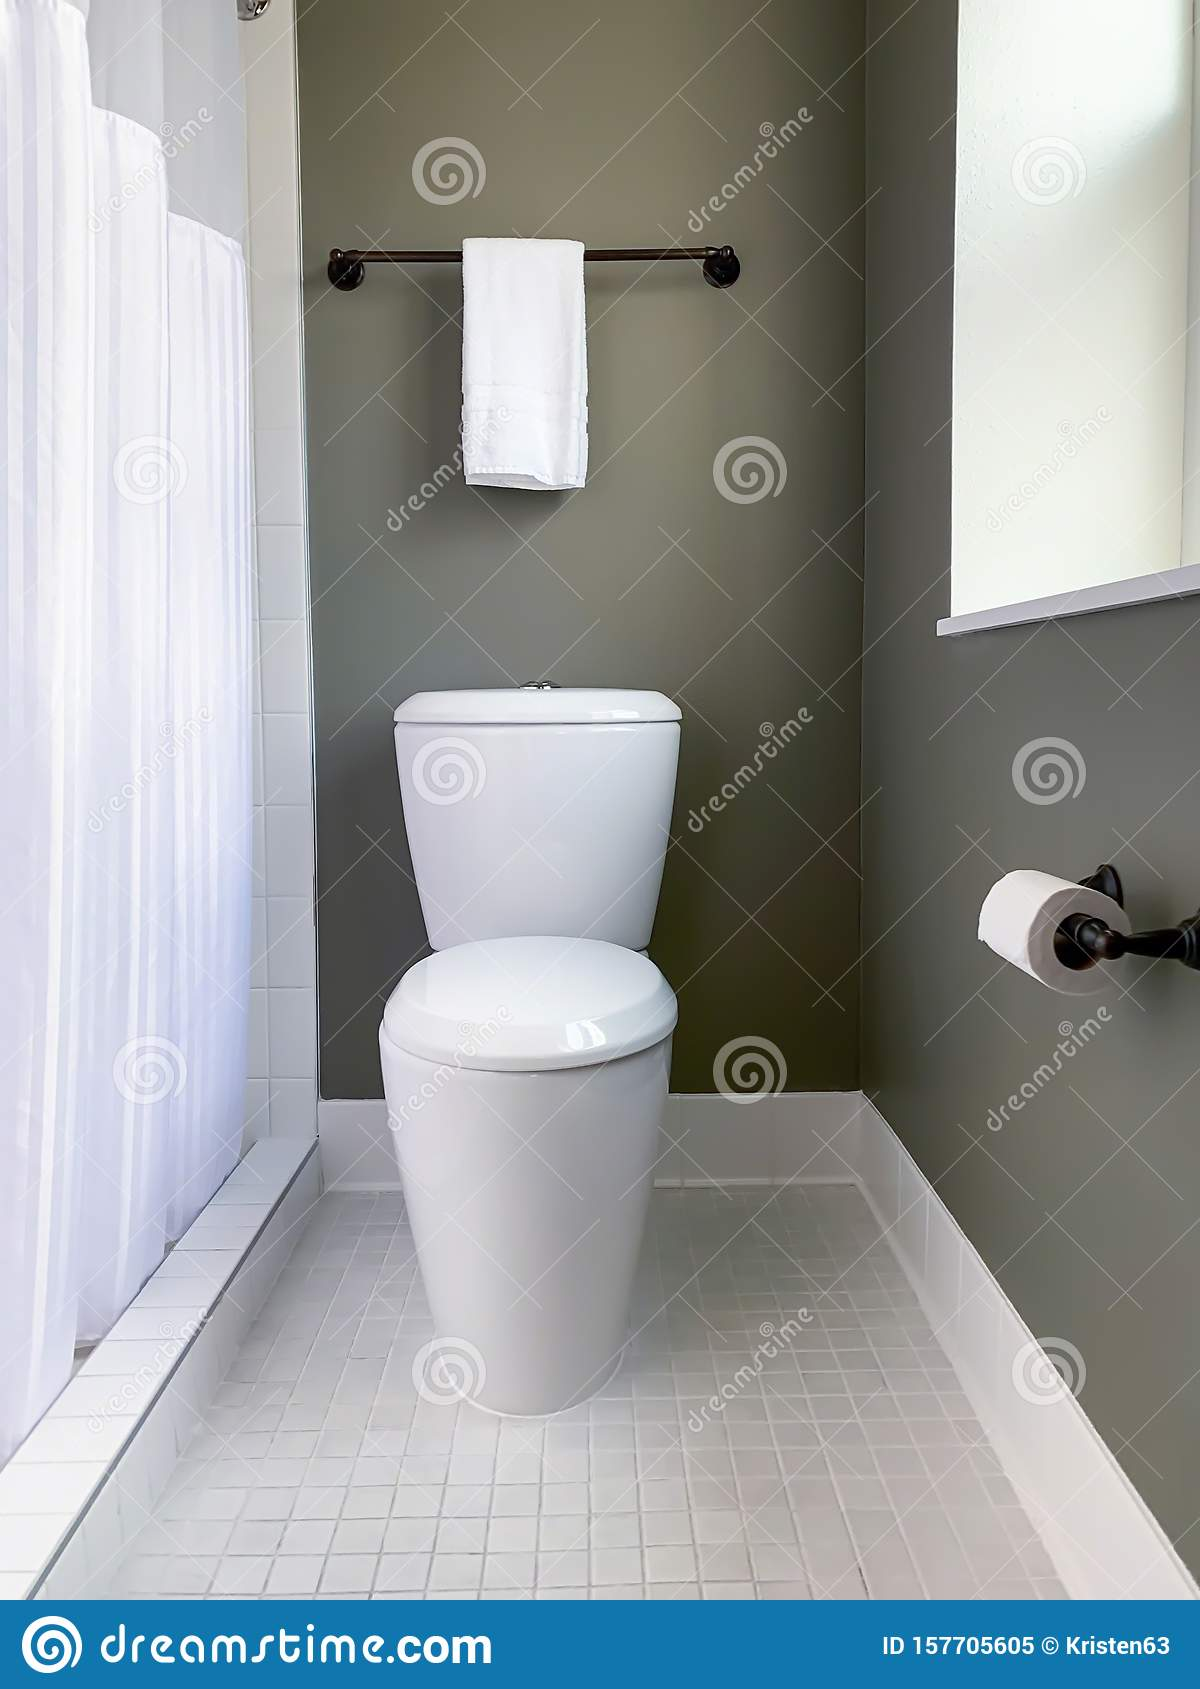 Modern Toilet Design In Stylish Gray And White Bathroom Stock Image Image Of Contemporary Architecture 157705605